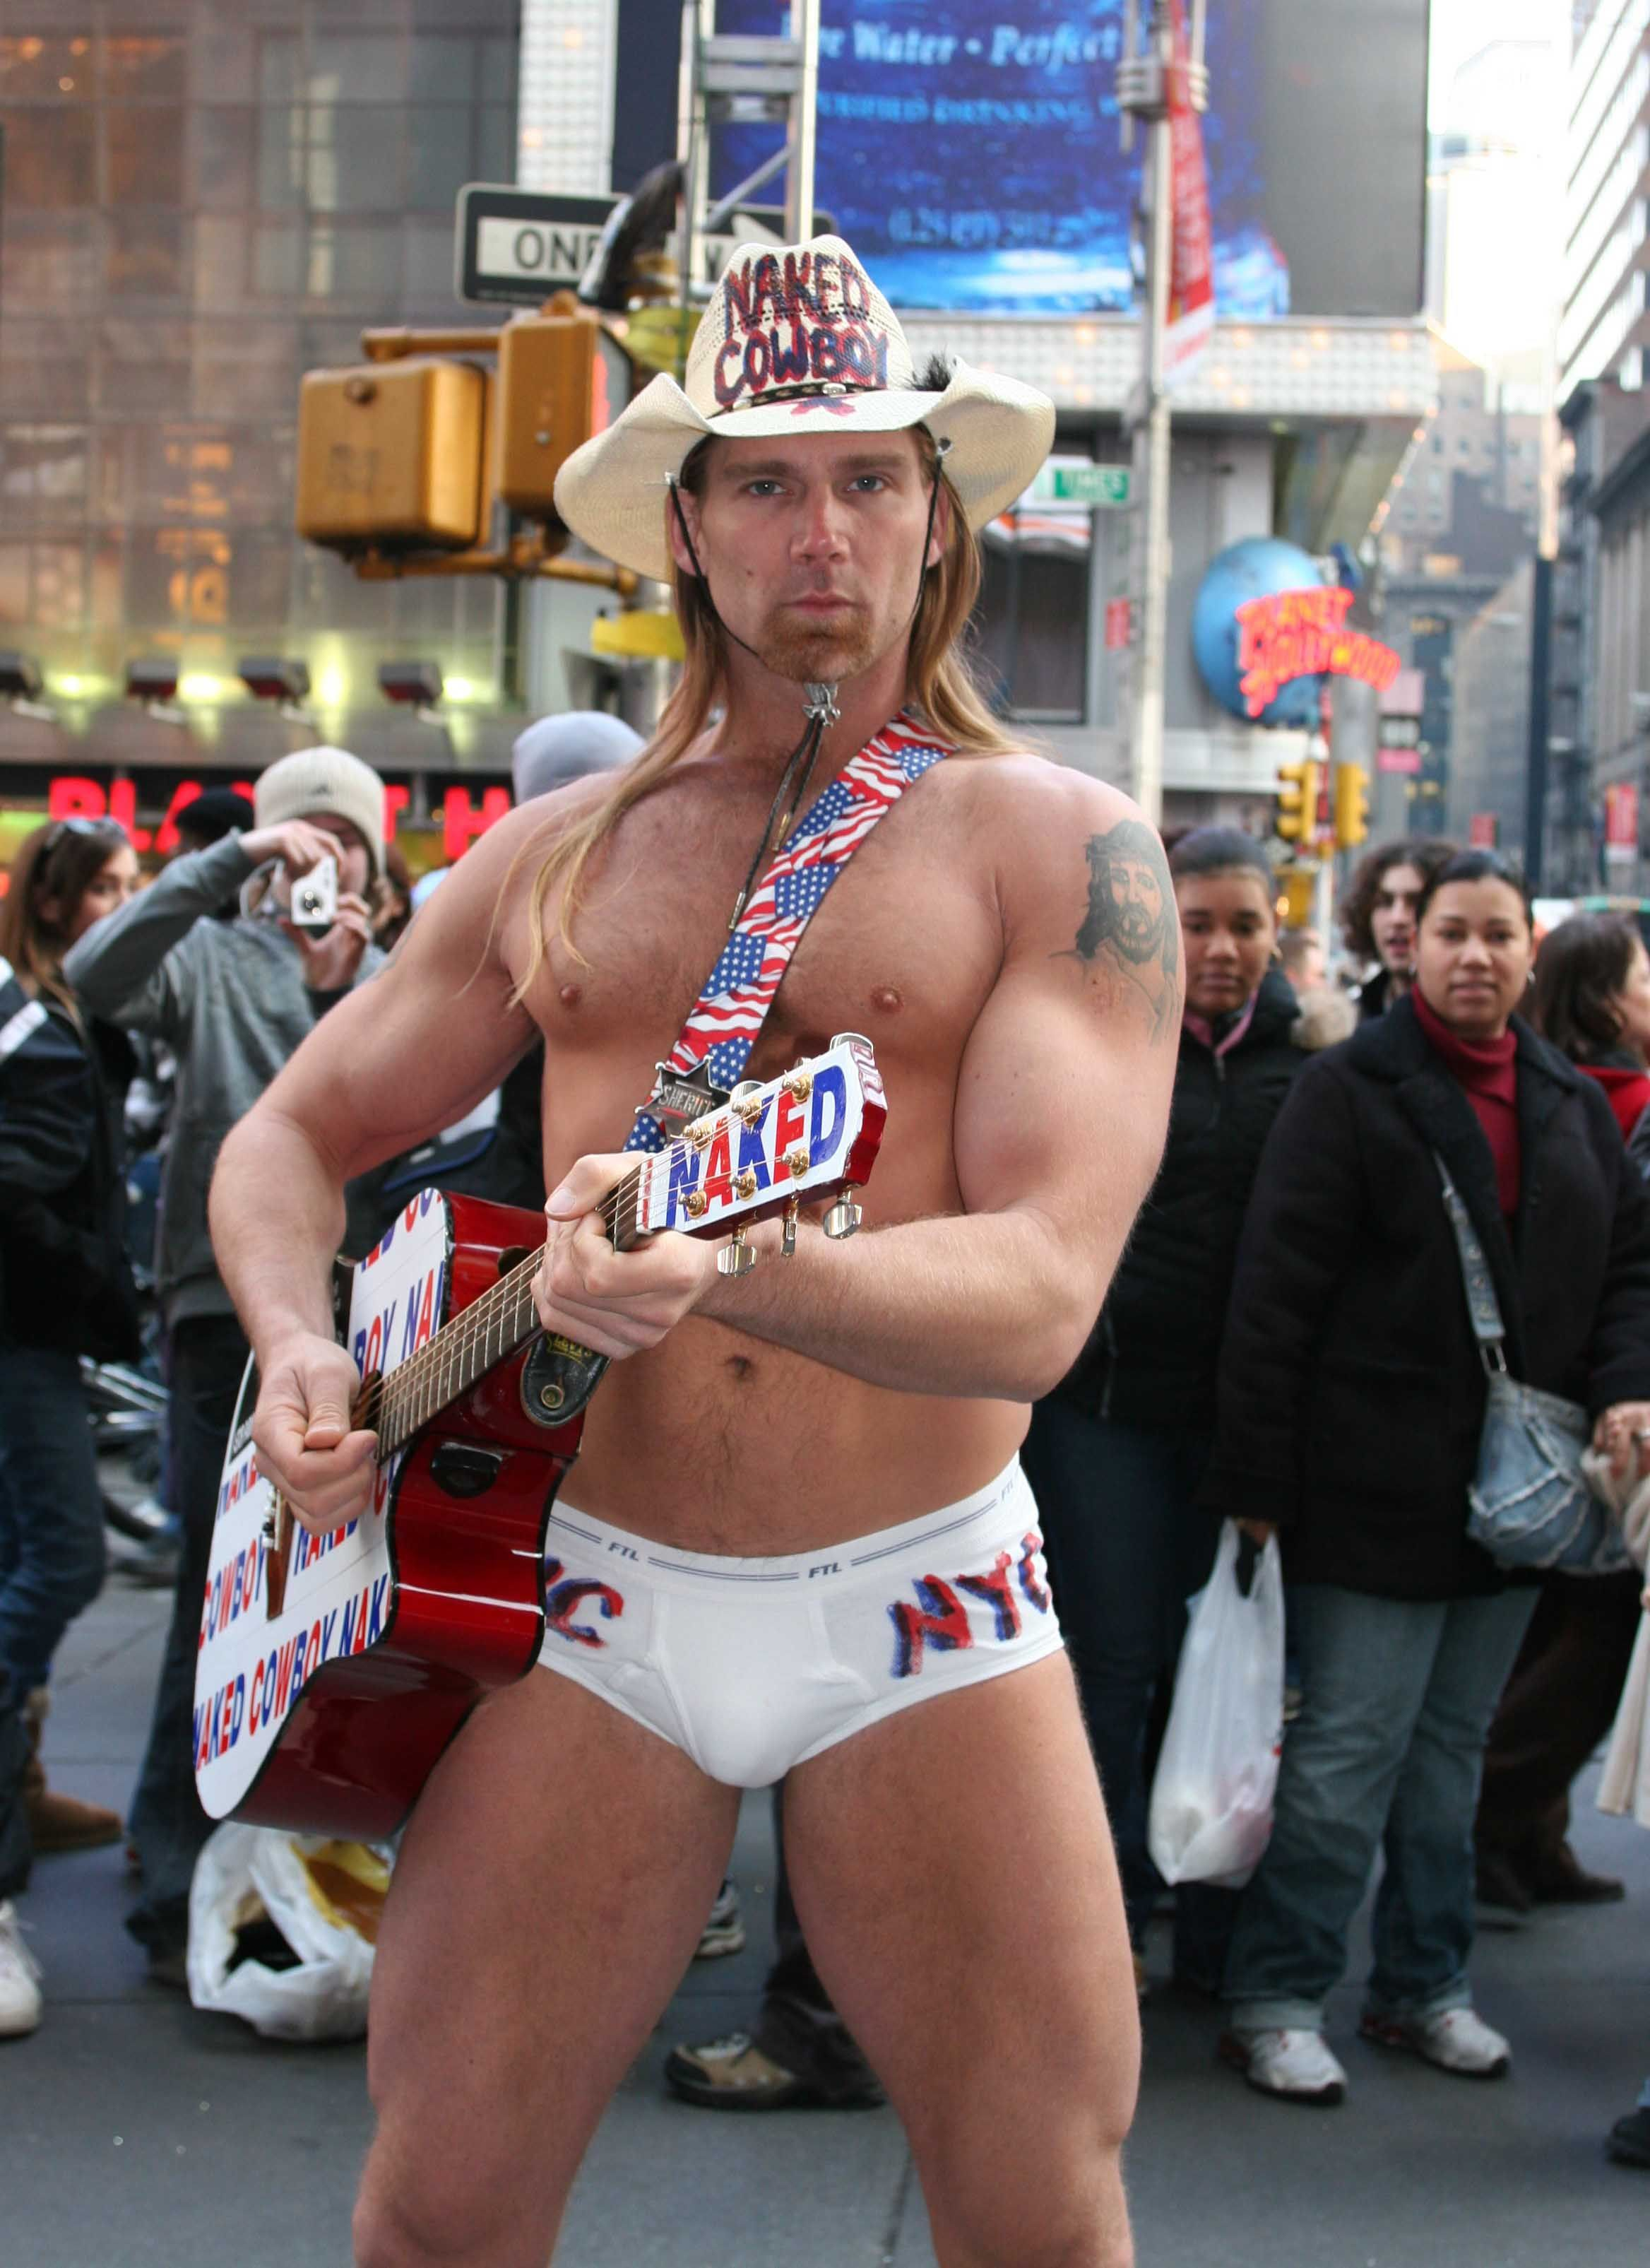 if he's the naked cowboy why is he wearing underwear? | My ...